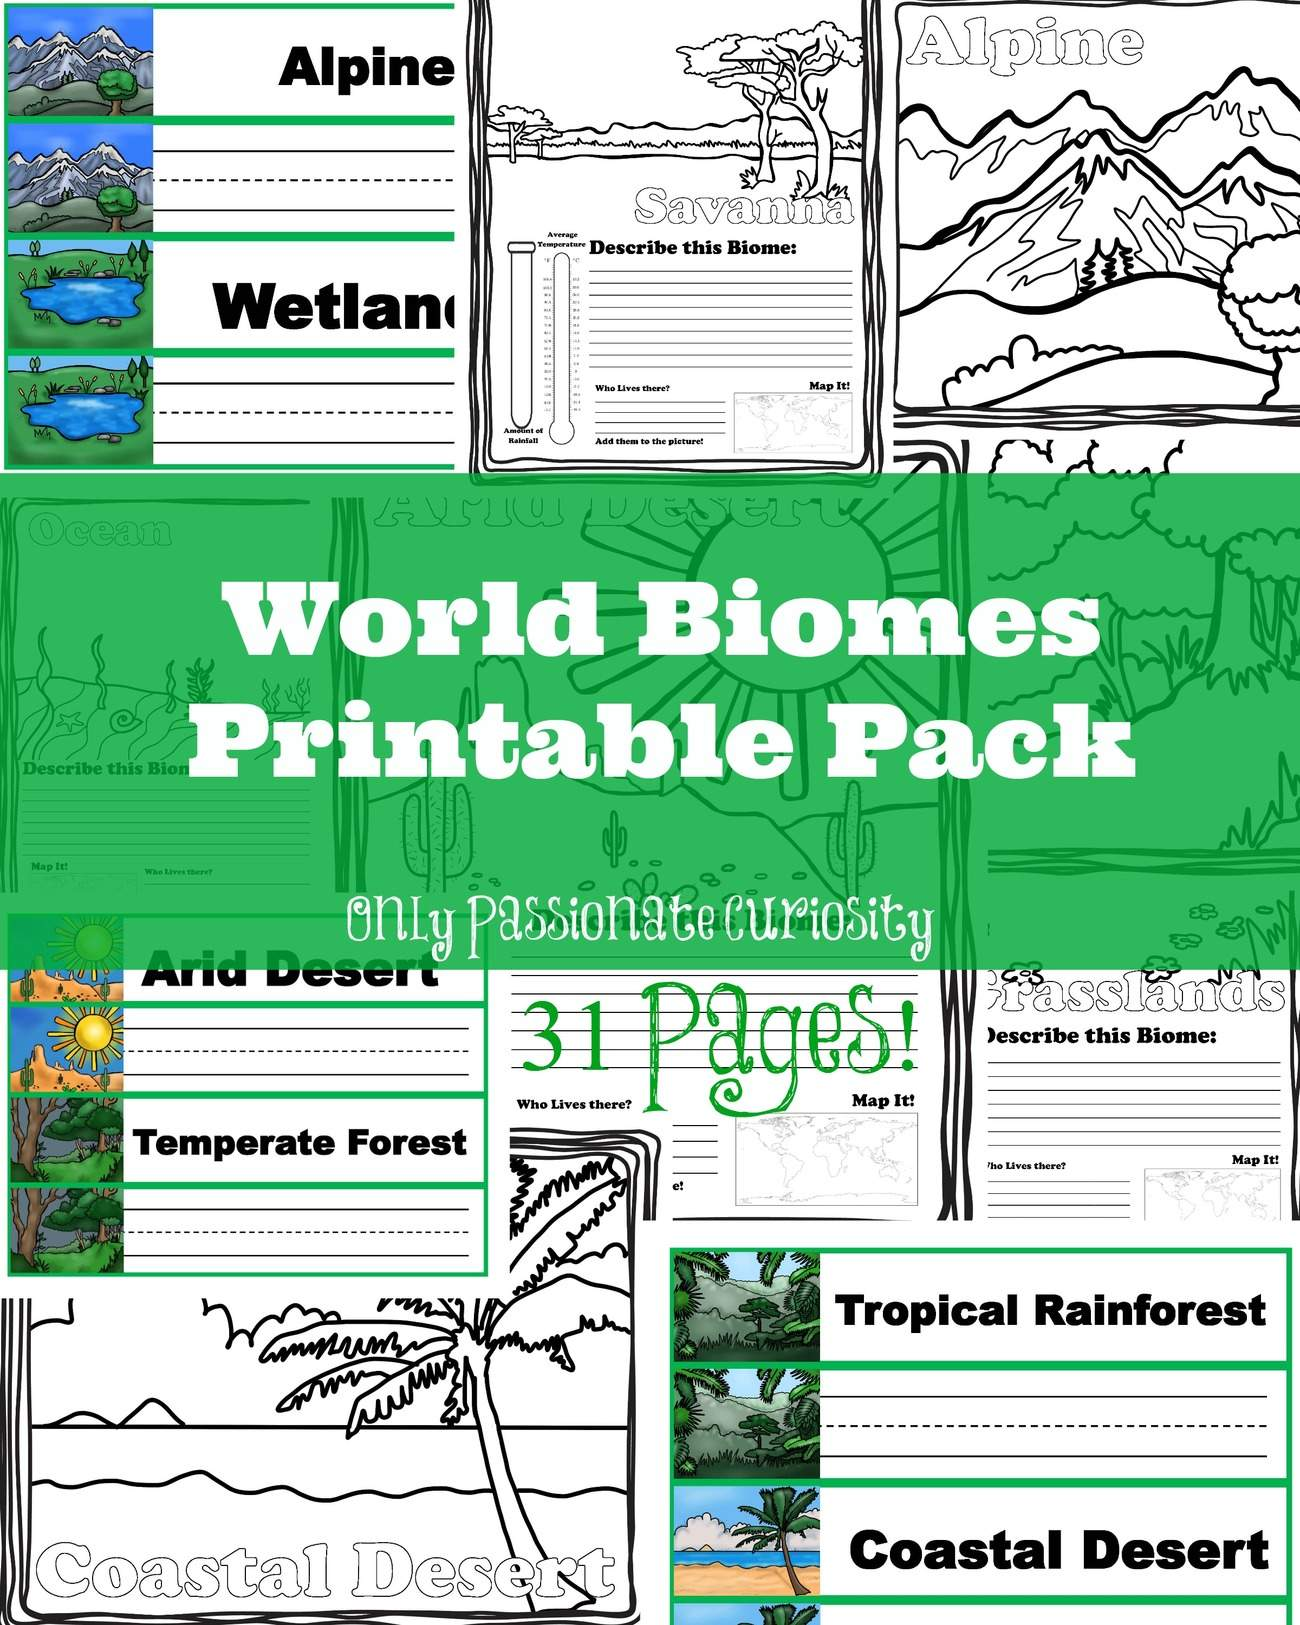 Learning About World Biomes – Only Passionate Curiosity